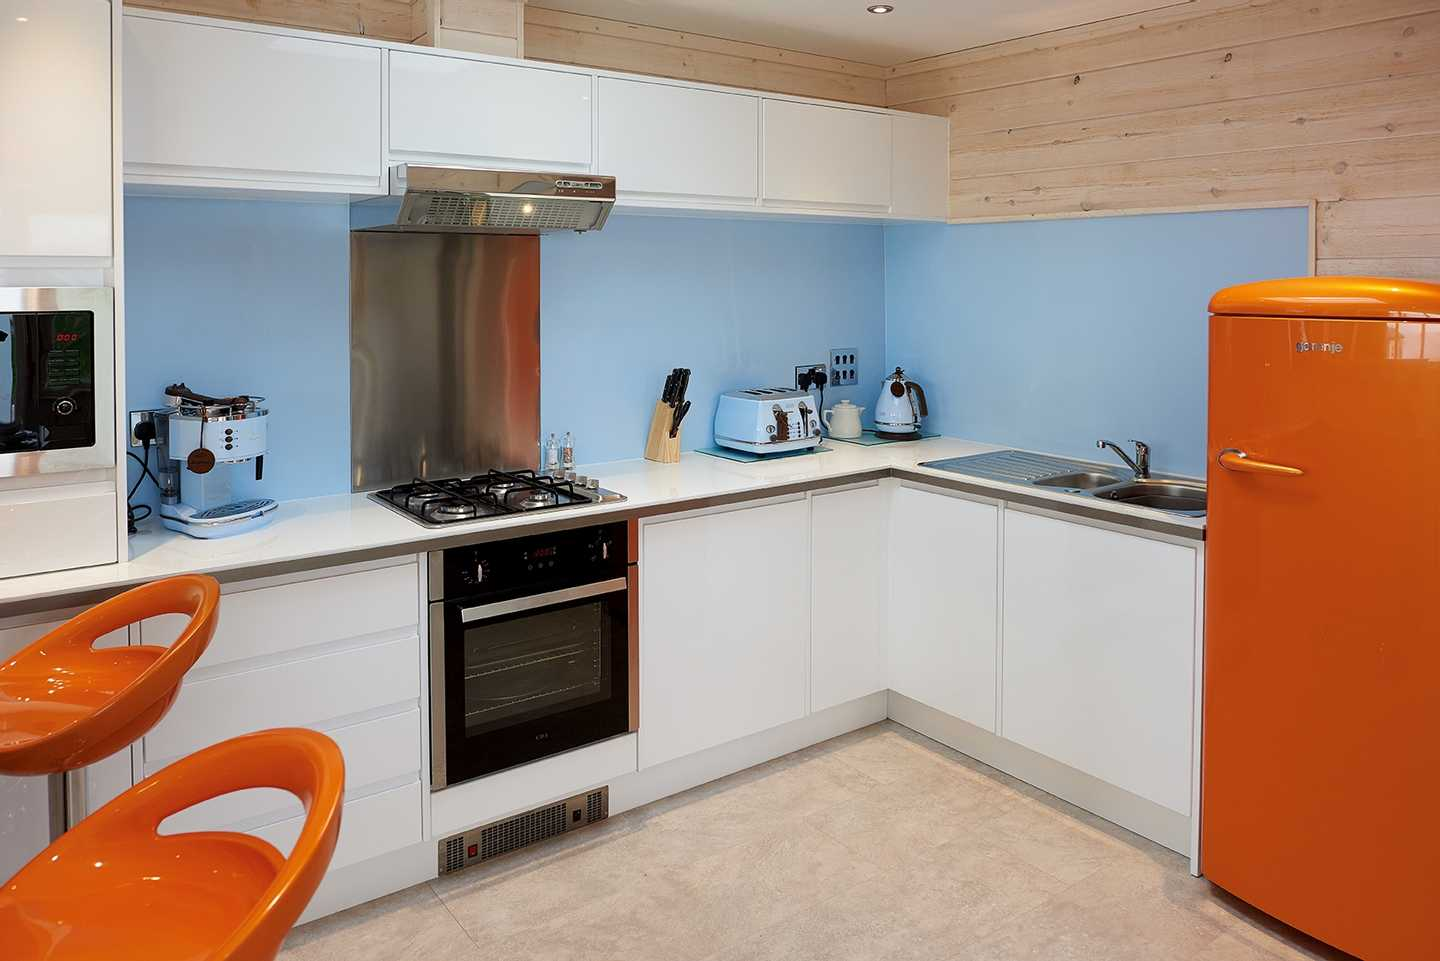 A Beach House kitchen with fridge, cooker, sink, toaster, kettle and coffee machine